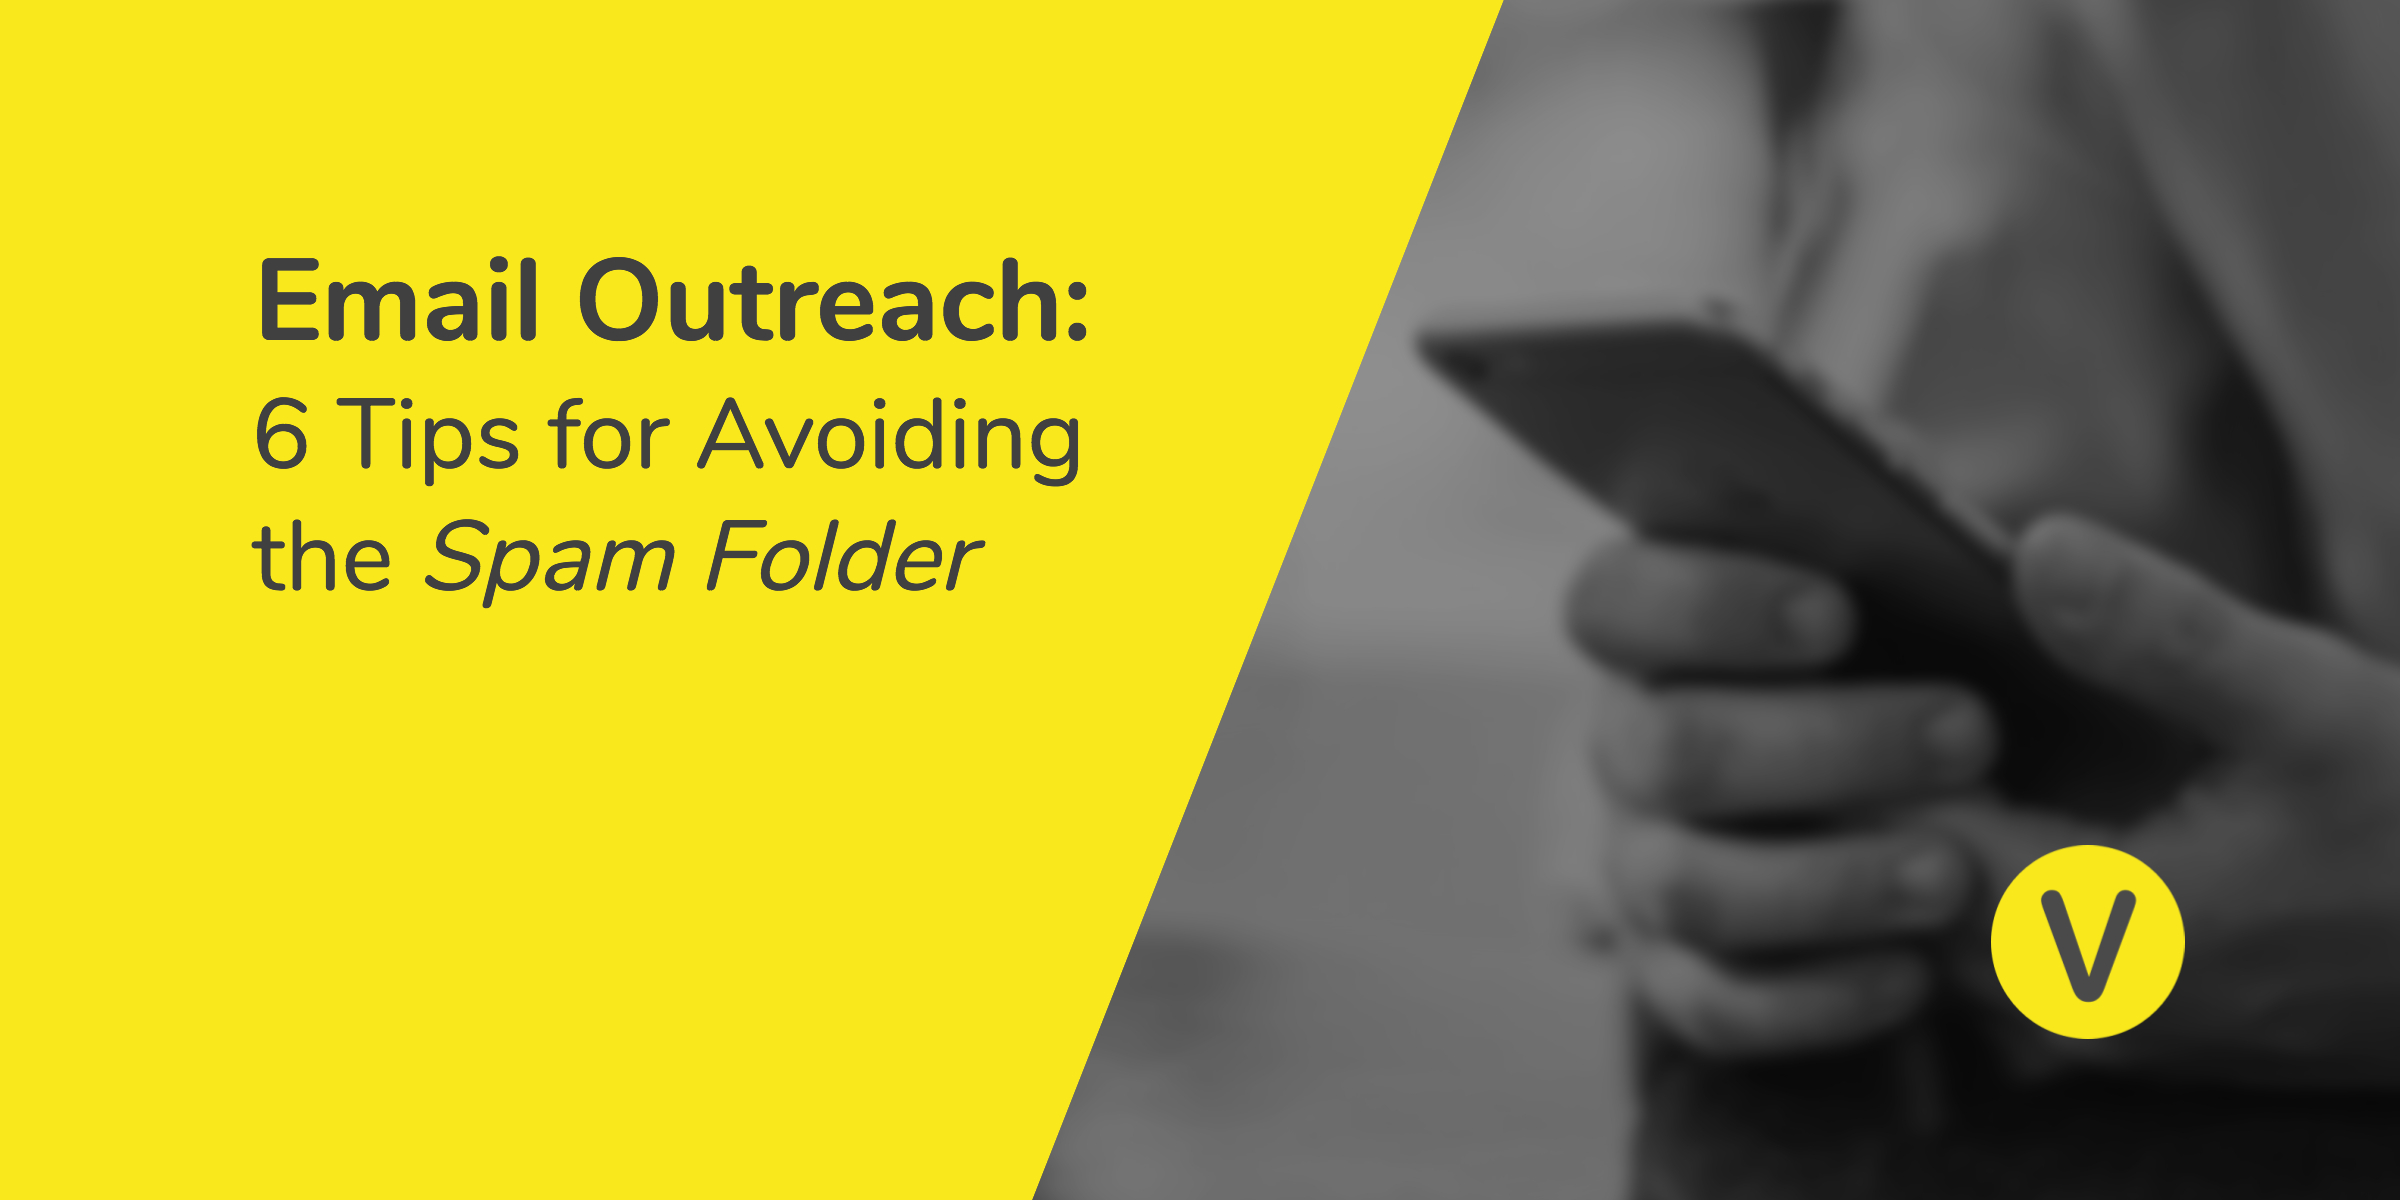 Email Outreach: 6 Tips for Avoiding the Spam Folder